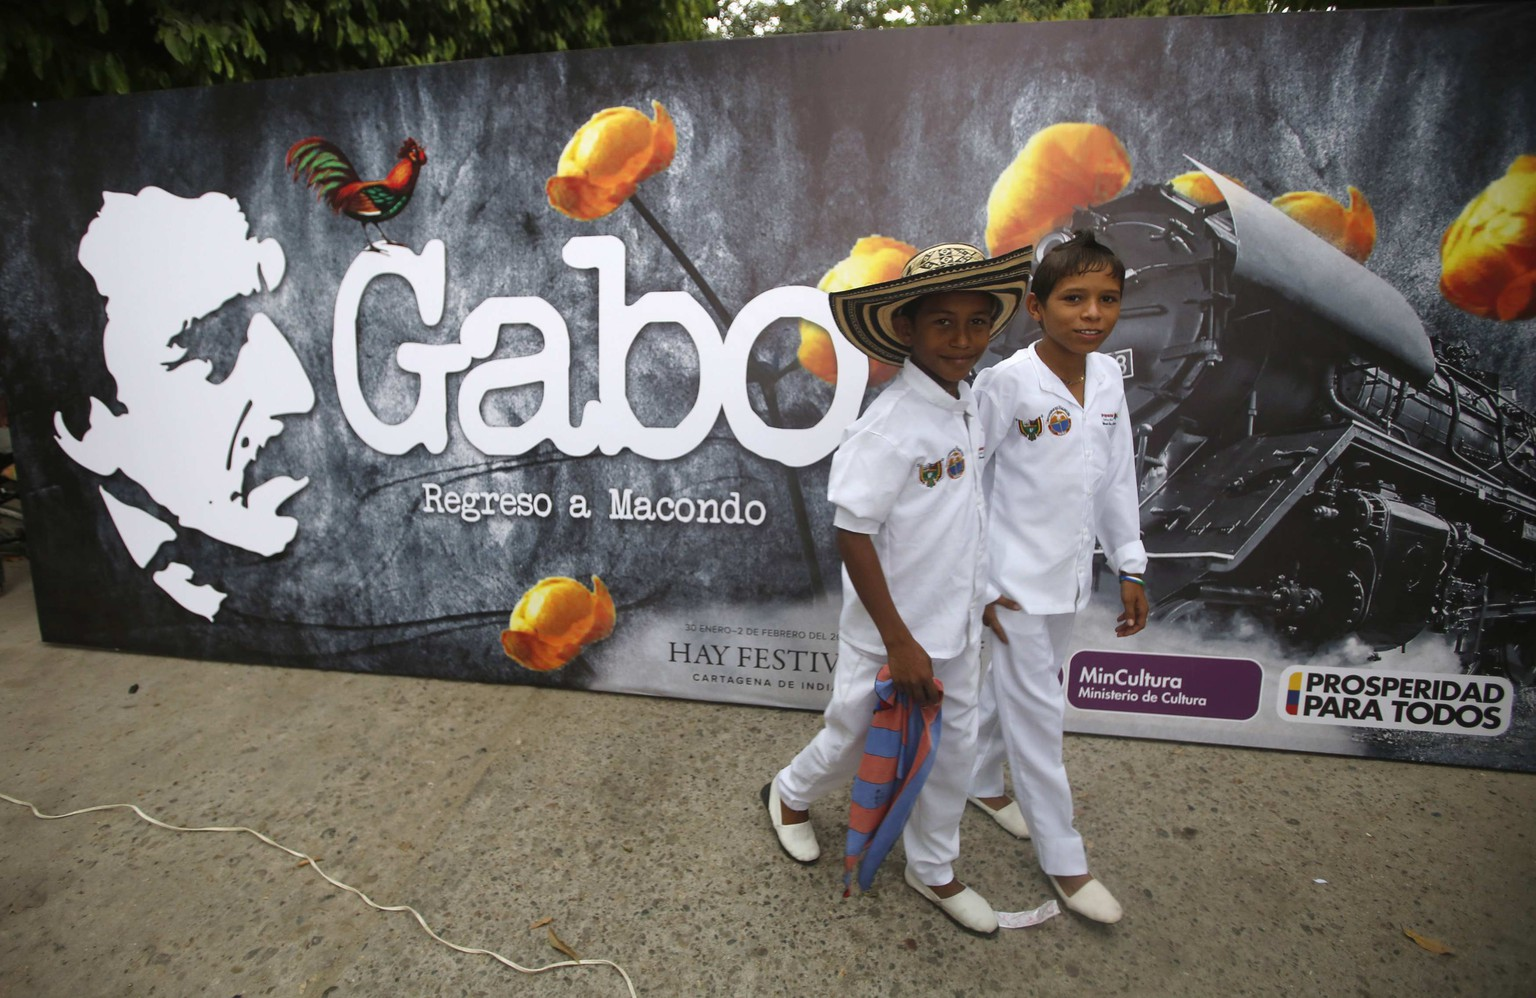 Residents walk next to a poster of Colombian Nobel laureate Gabriel Garcia Marquez, before a symbolic public funeral held for Garcia Marquez, in Aracataca April 21, 2014. Garcia Marquez, 87, who was born in Aracataca, died in Mexico City on April 17, 2014. Colombia is due to hold a separate memorial on Tuesday. REUTERS/John Vizcaino (COLOMBIA - Tags: SOCIETY OBITUARY)